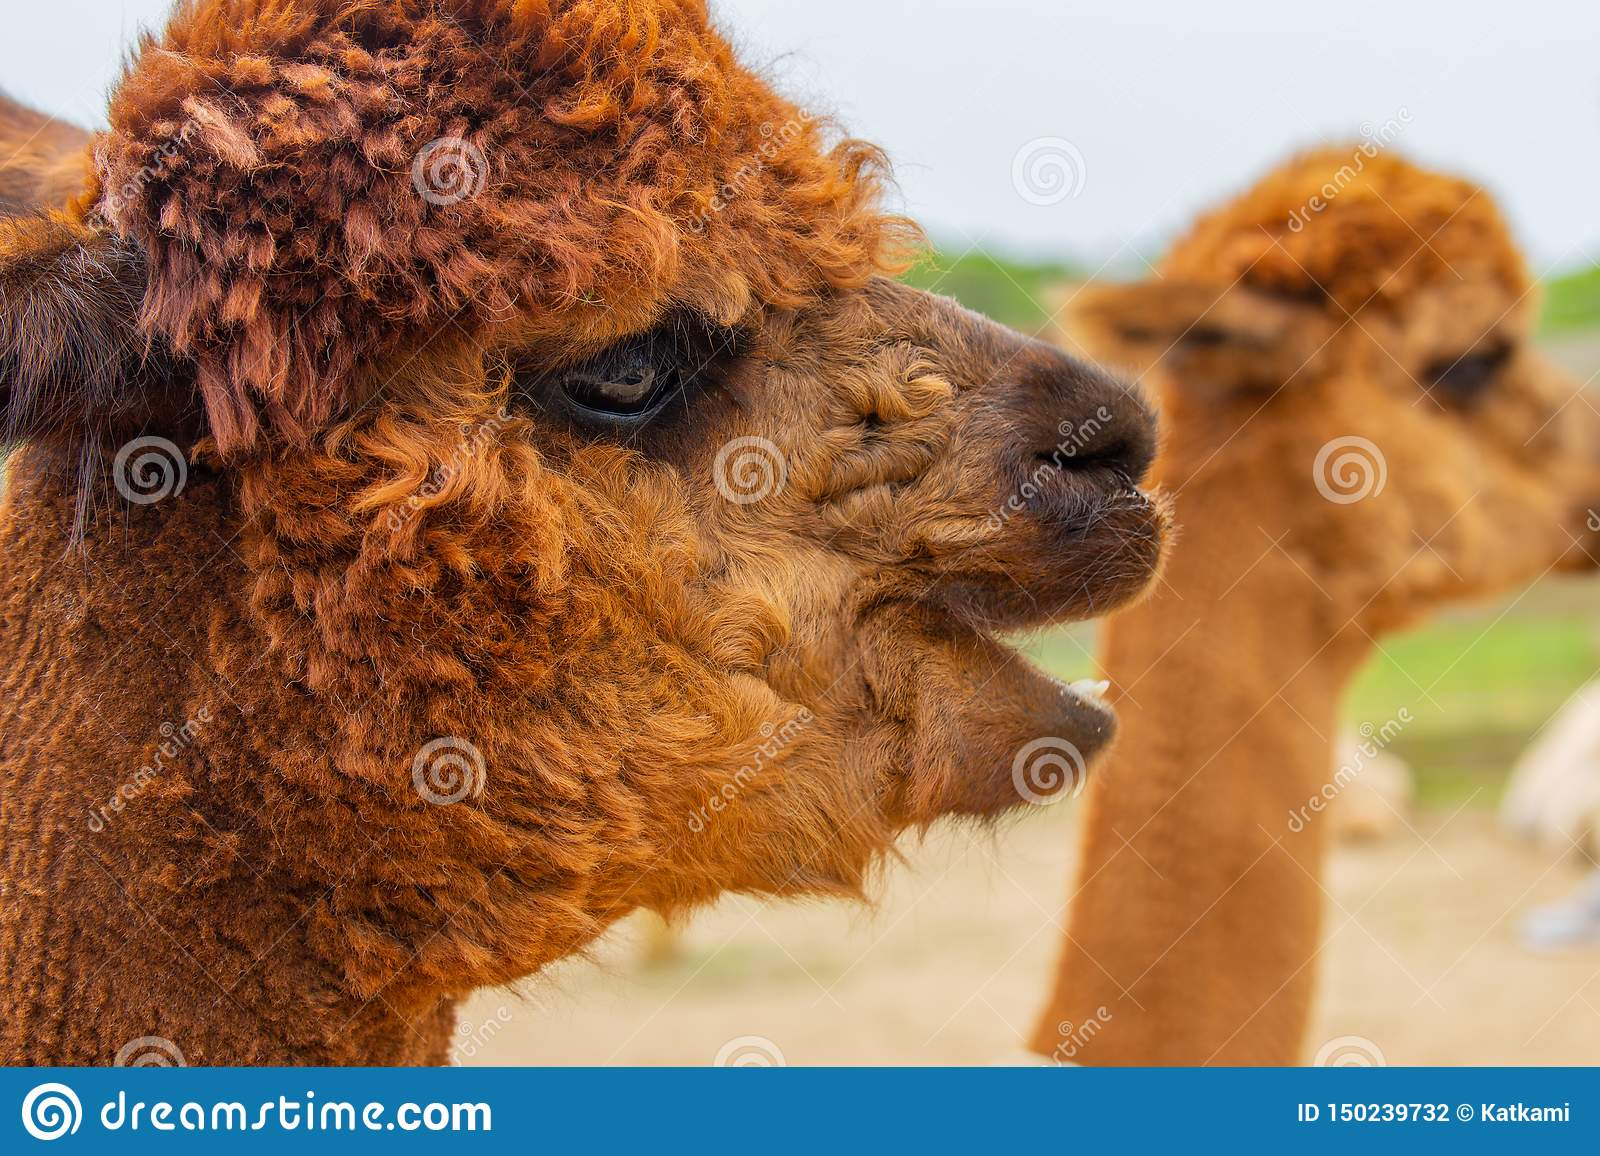 Brown alpaca head portrait with mouth open